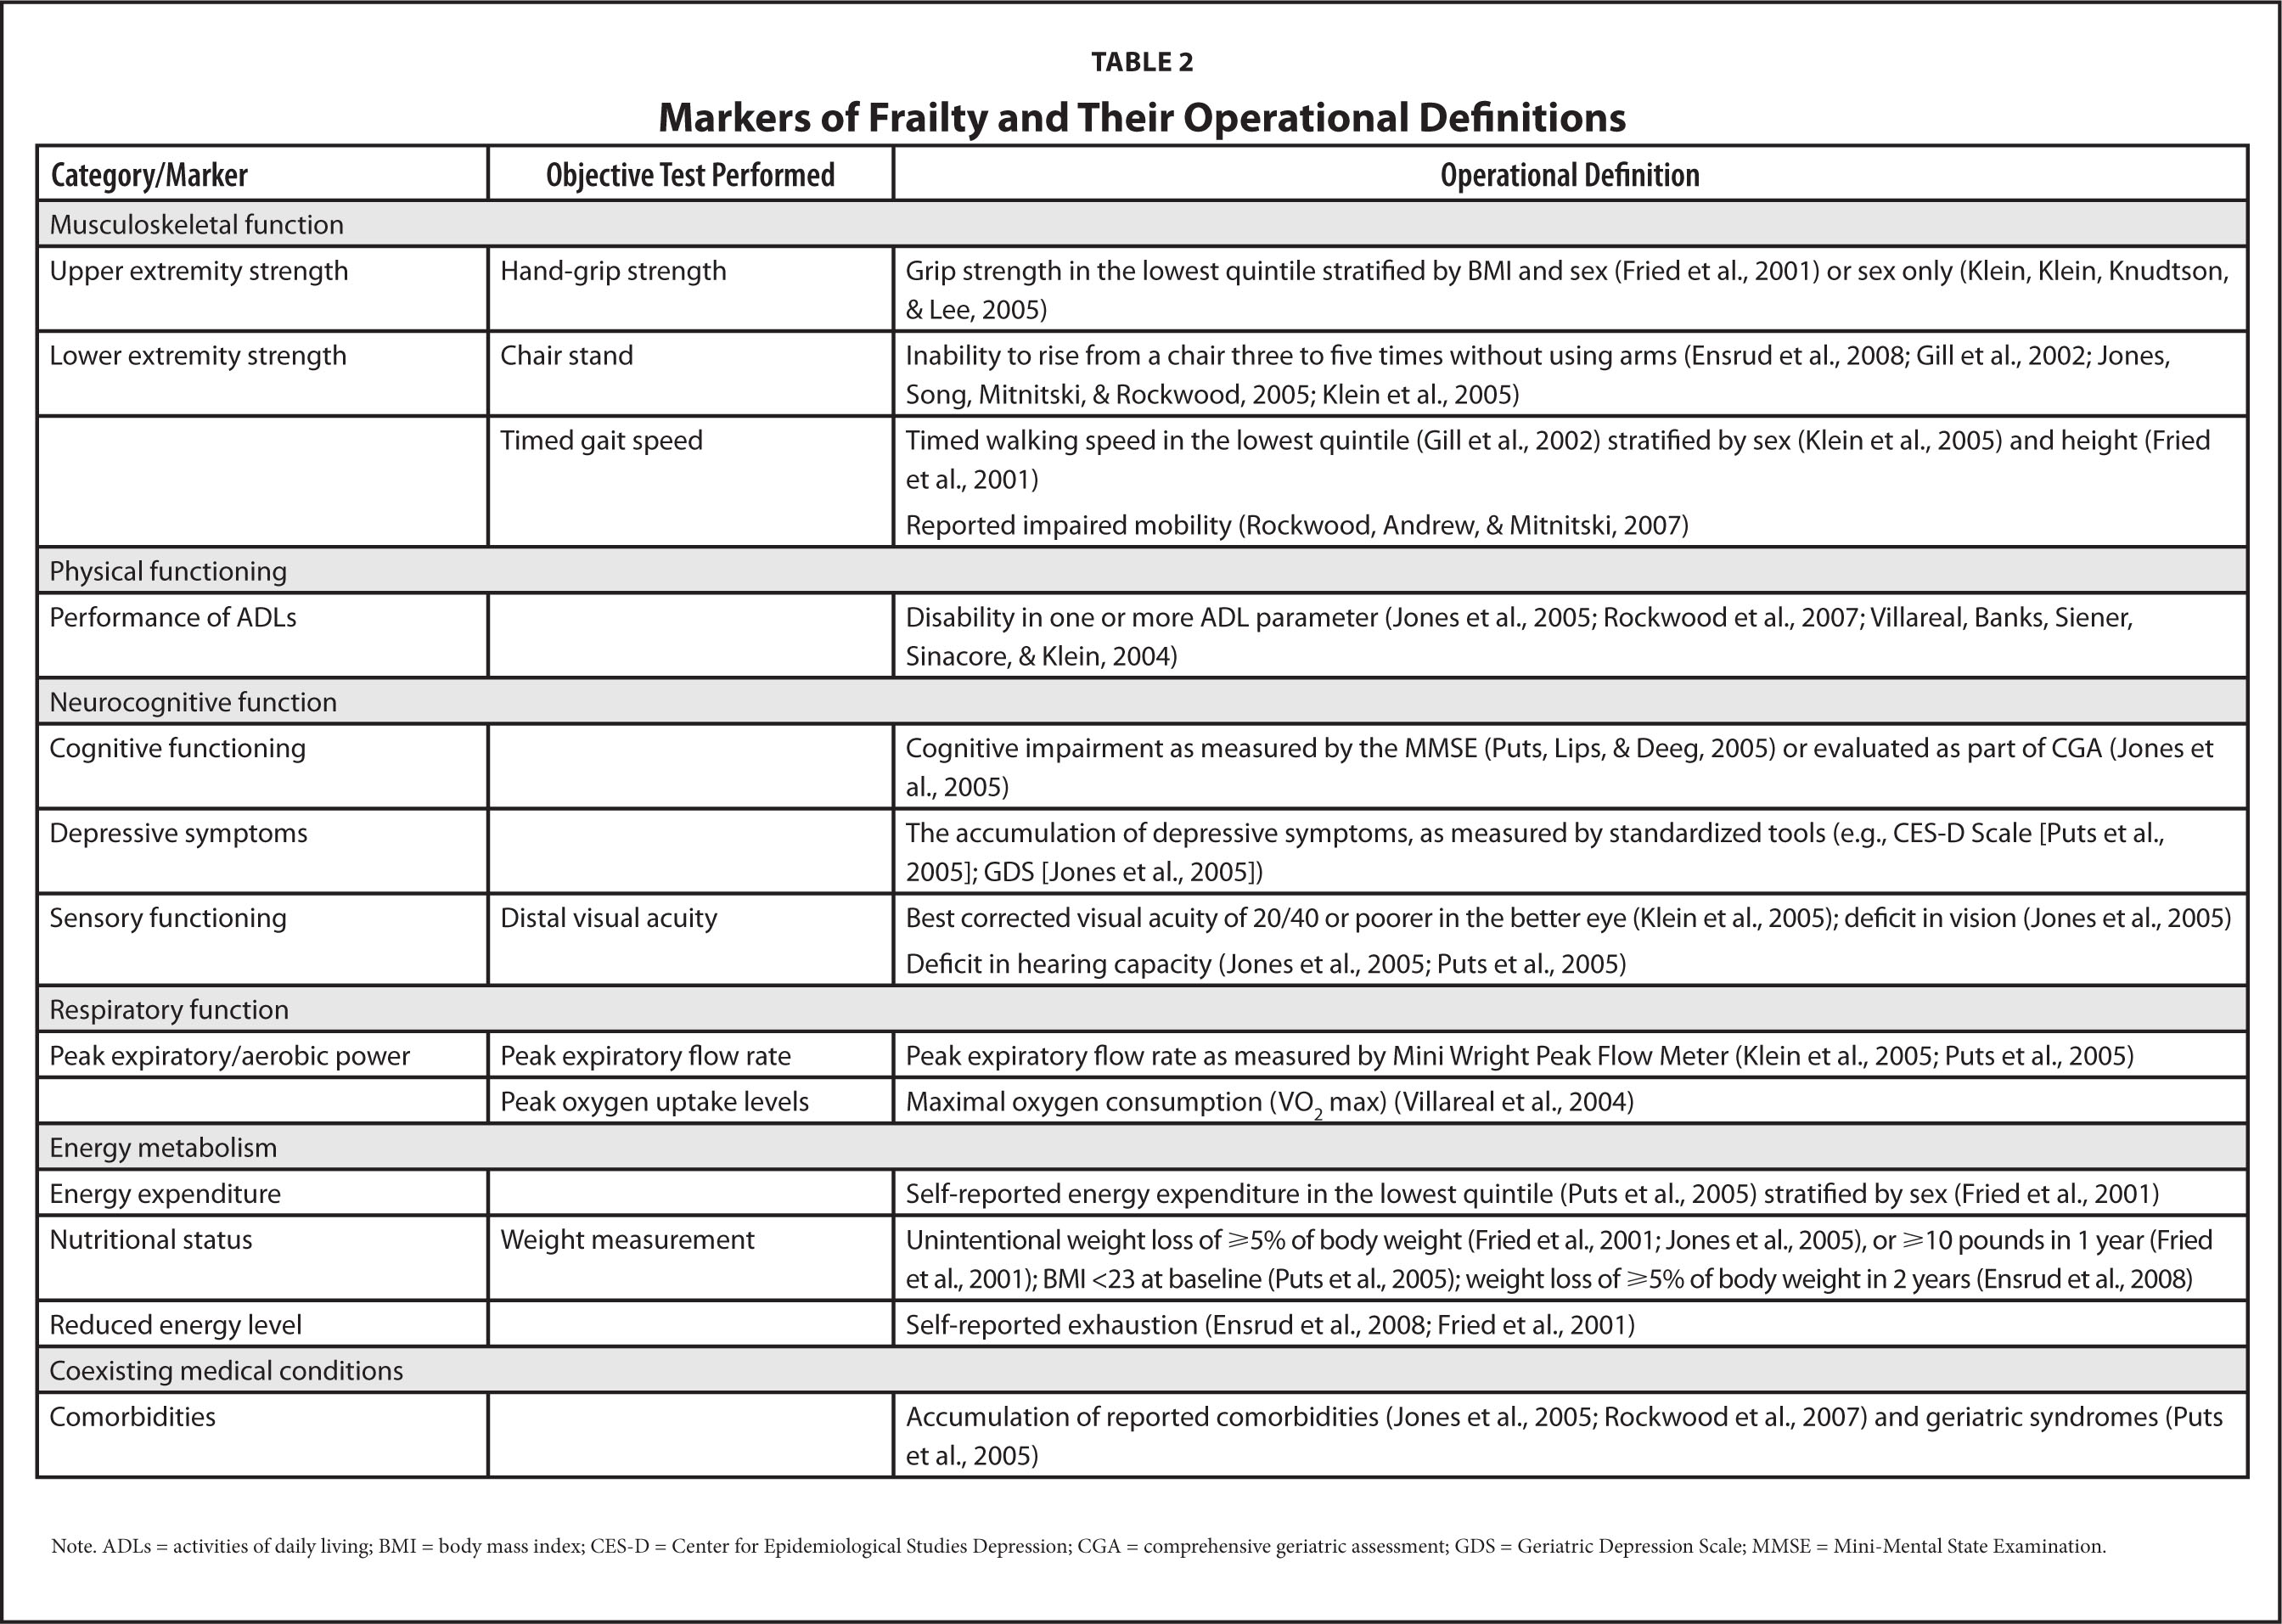 Markers of Frailty and Their Operational Definitions